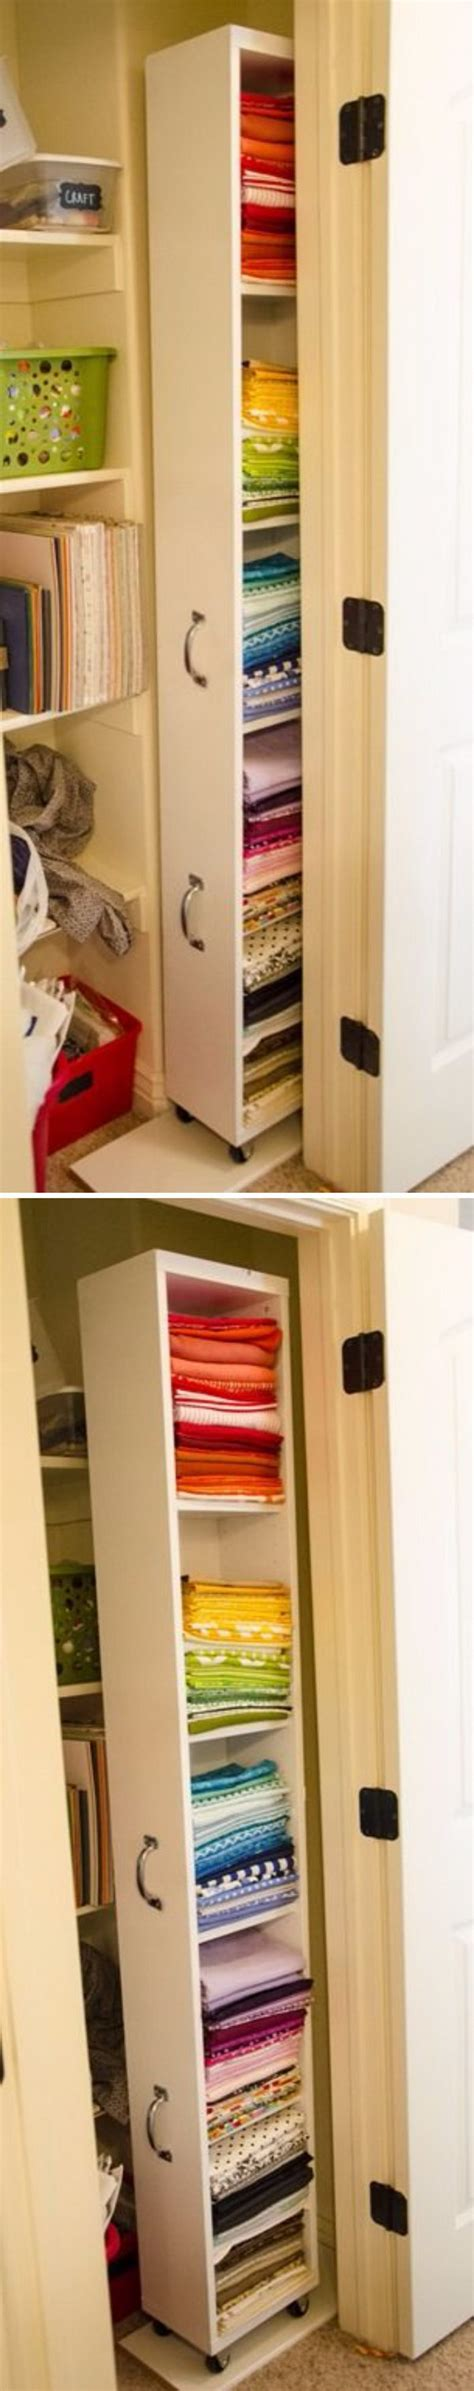 How To Make Your Closet Look Bigger by Living Space Small Try These Hacks To Squeeze In More